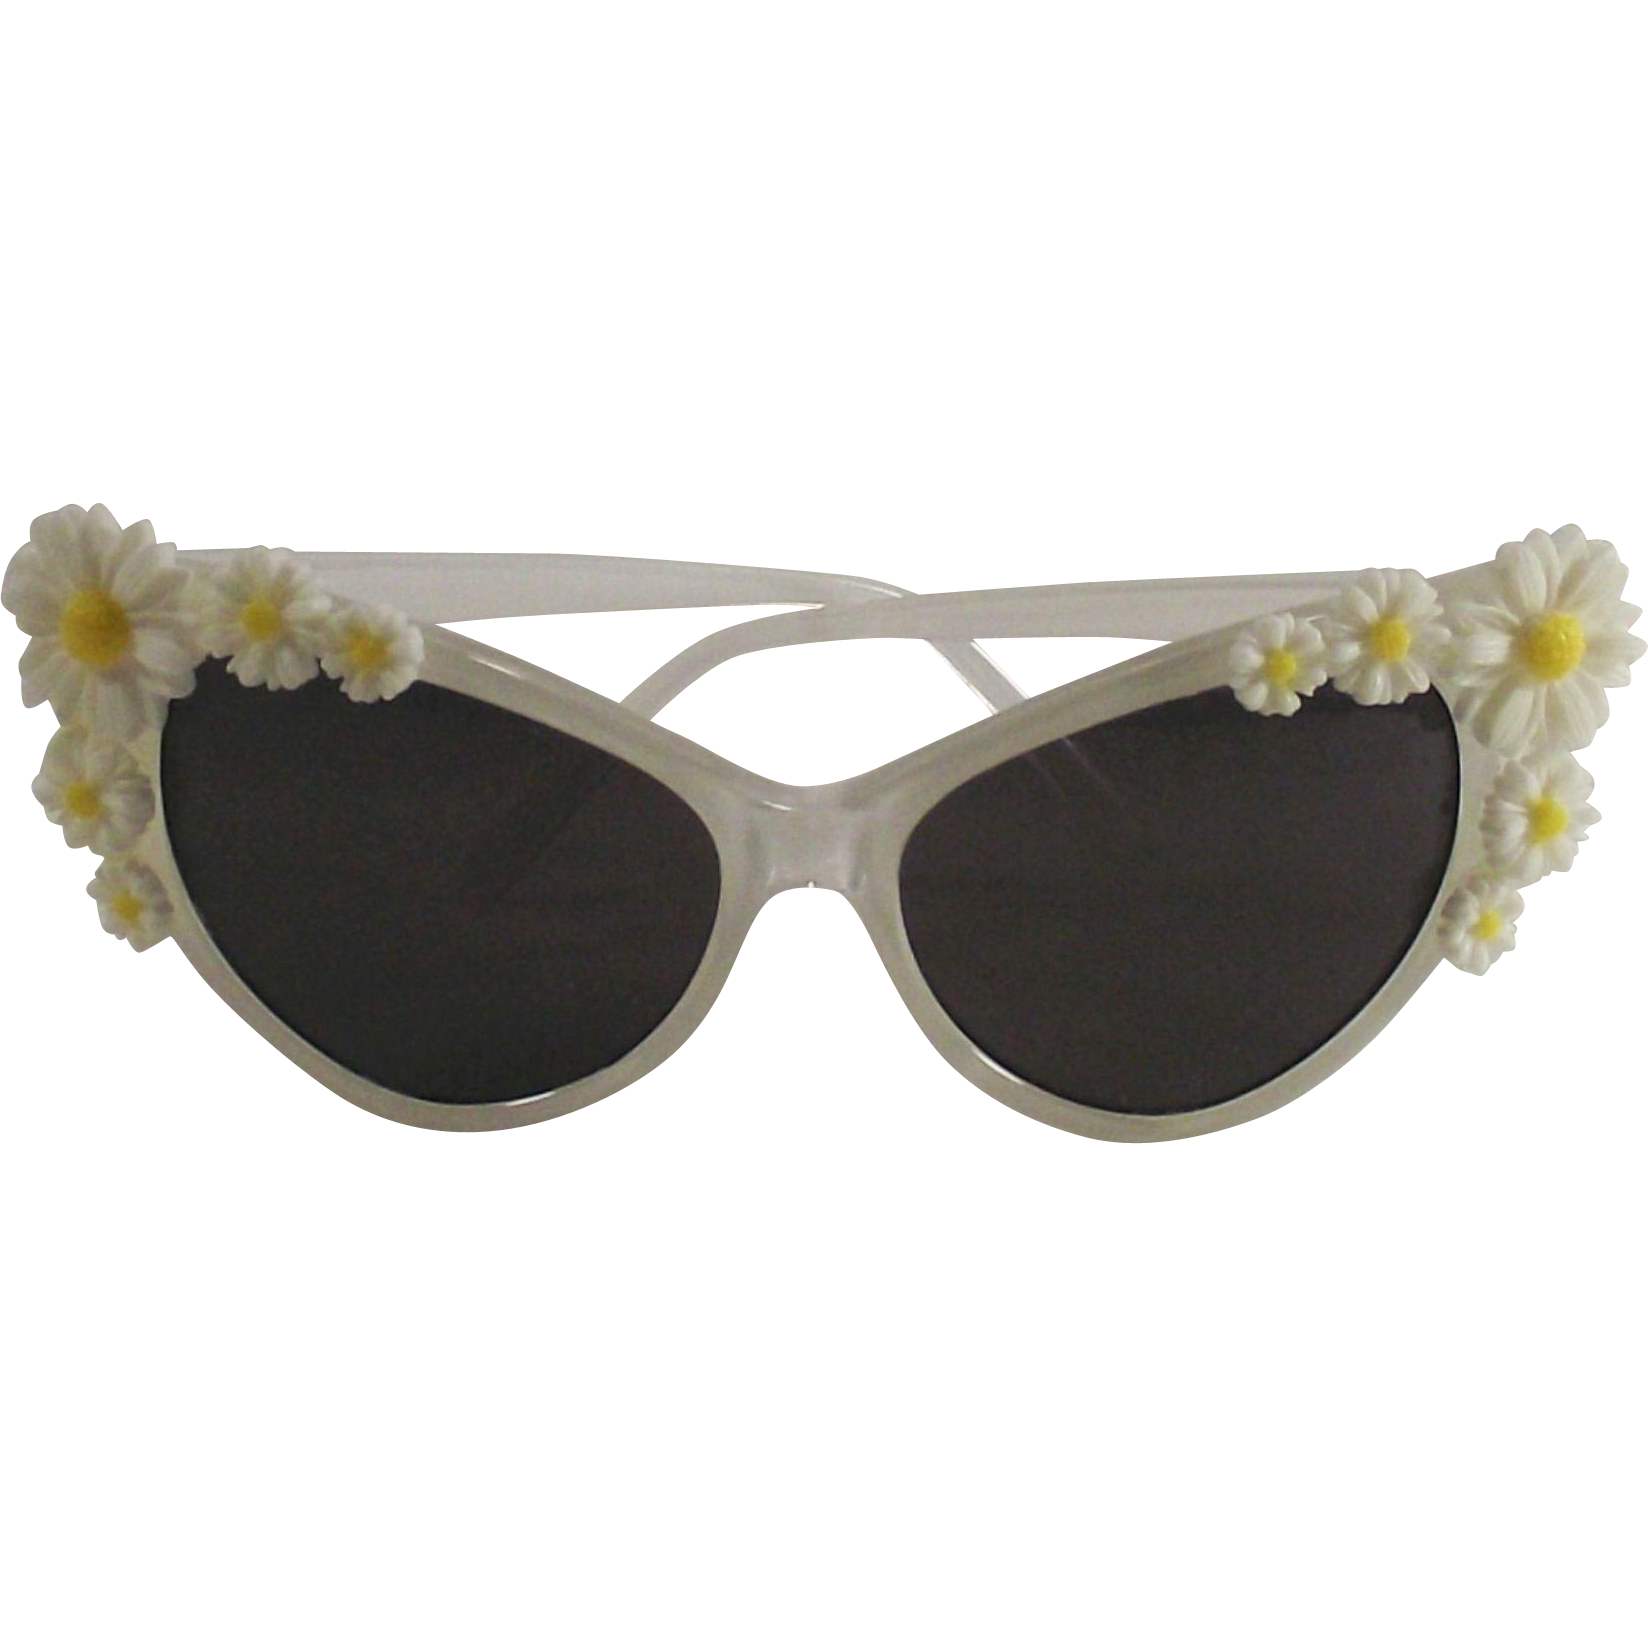 Vintage 1960's Mod Ladies Sunglasses with Daisies